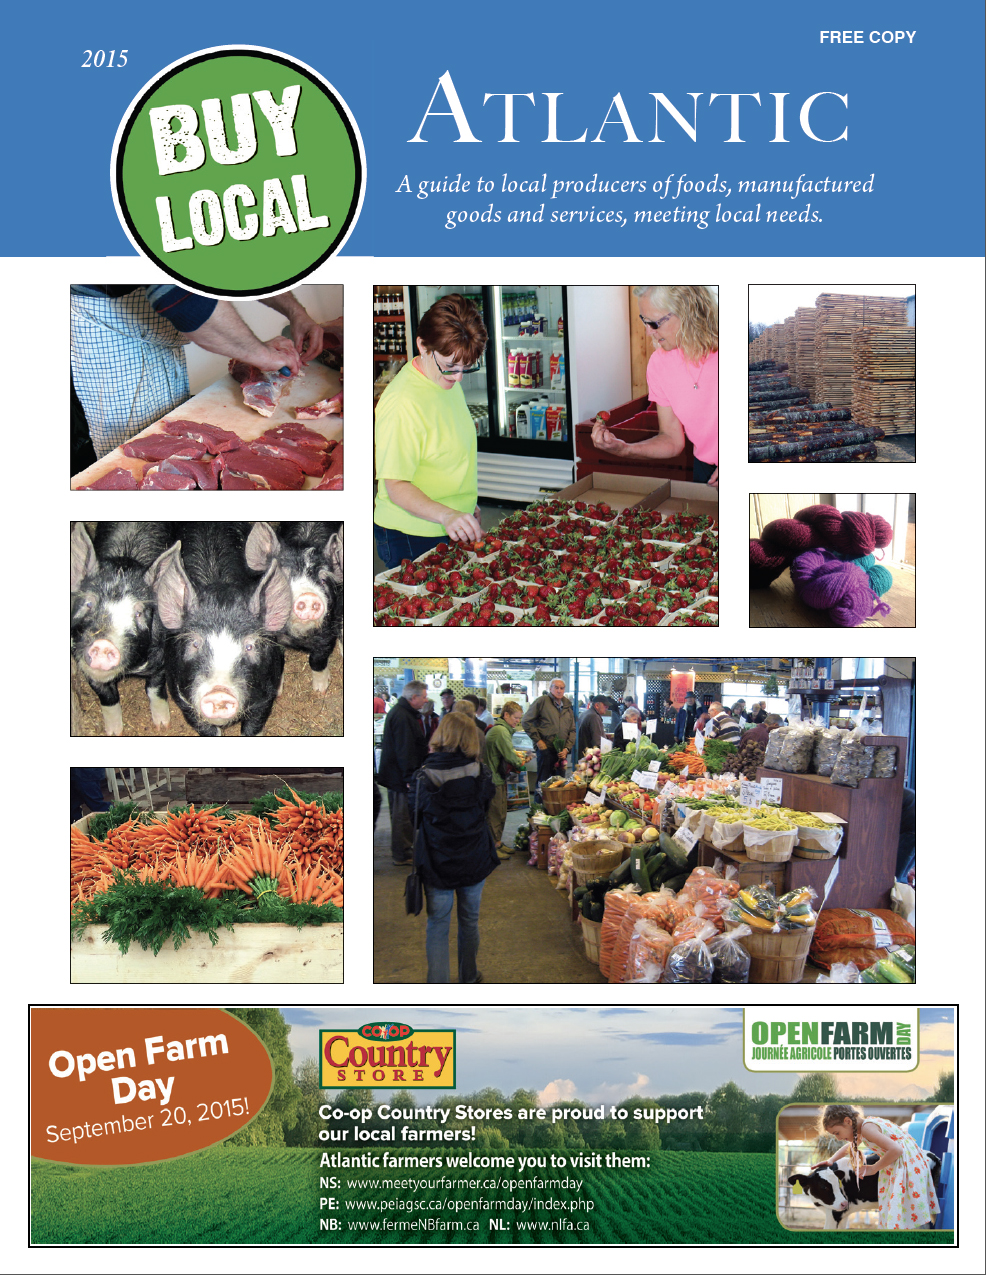 Download your FREE copy of Buy Local Atlantic 2015 today!